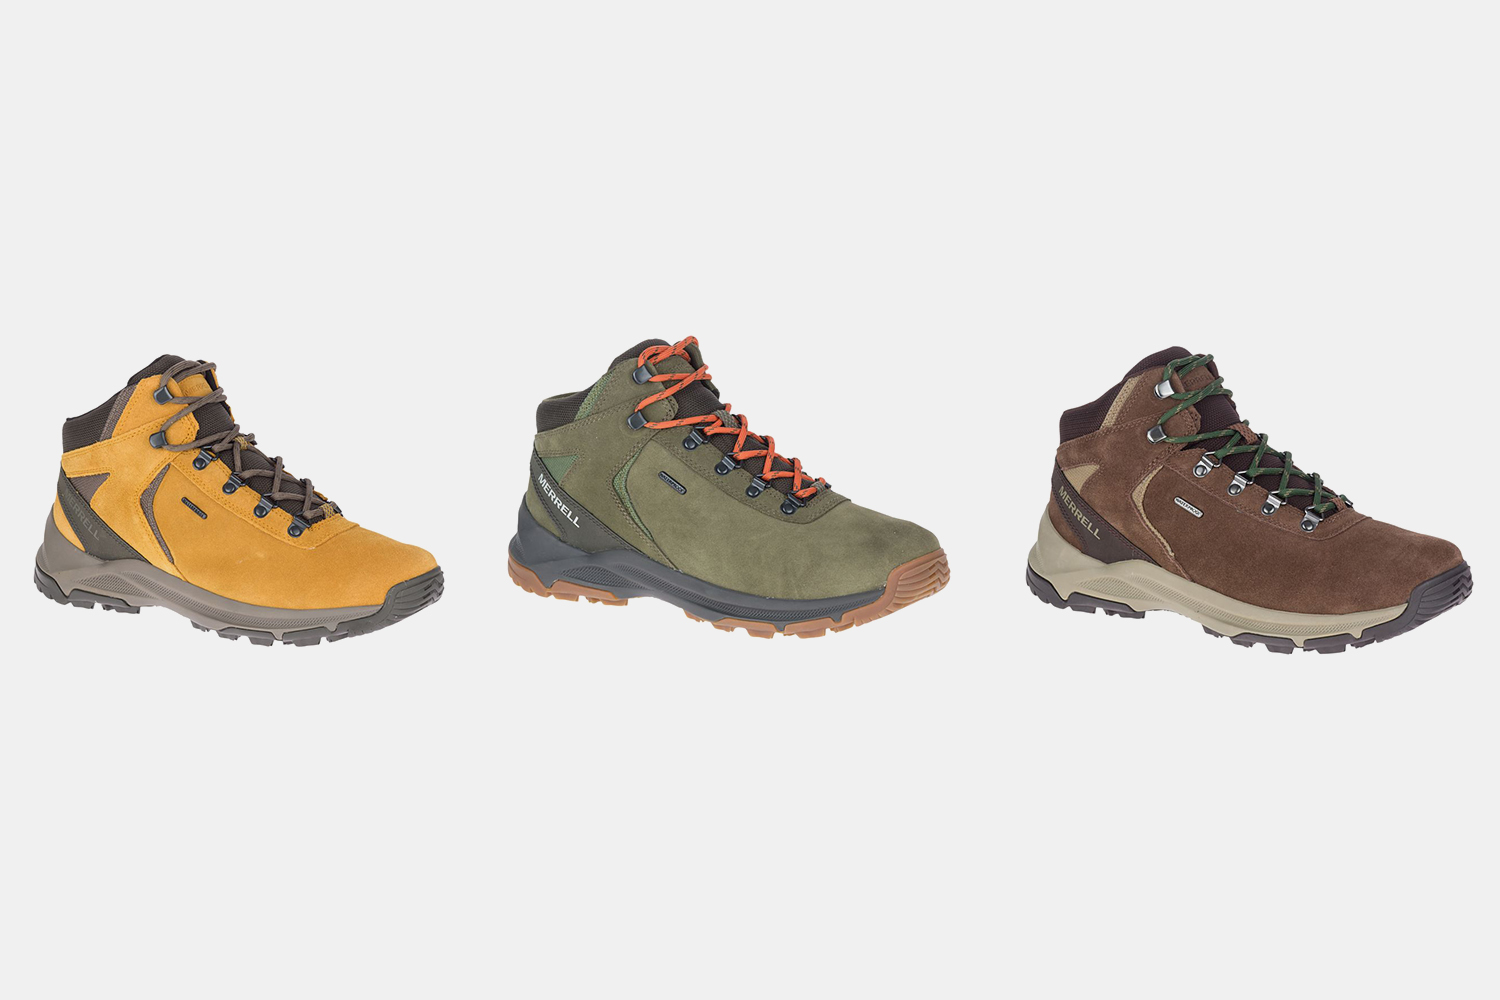 Deal: Save Up to 25% on Hiking Favorites at Merrell